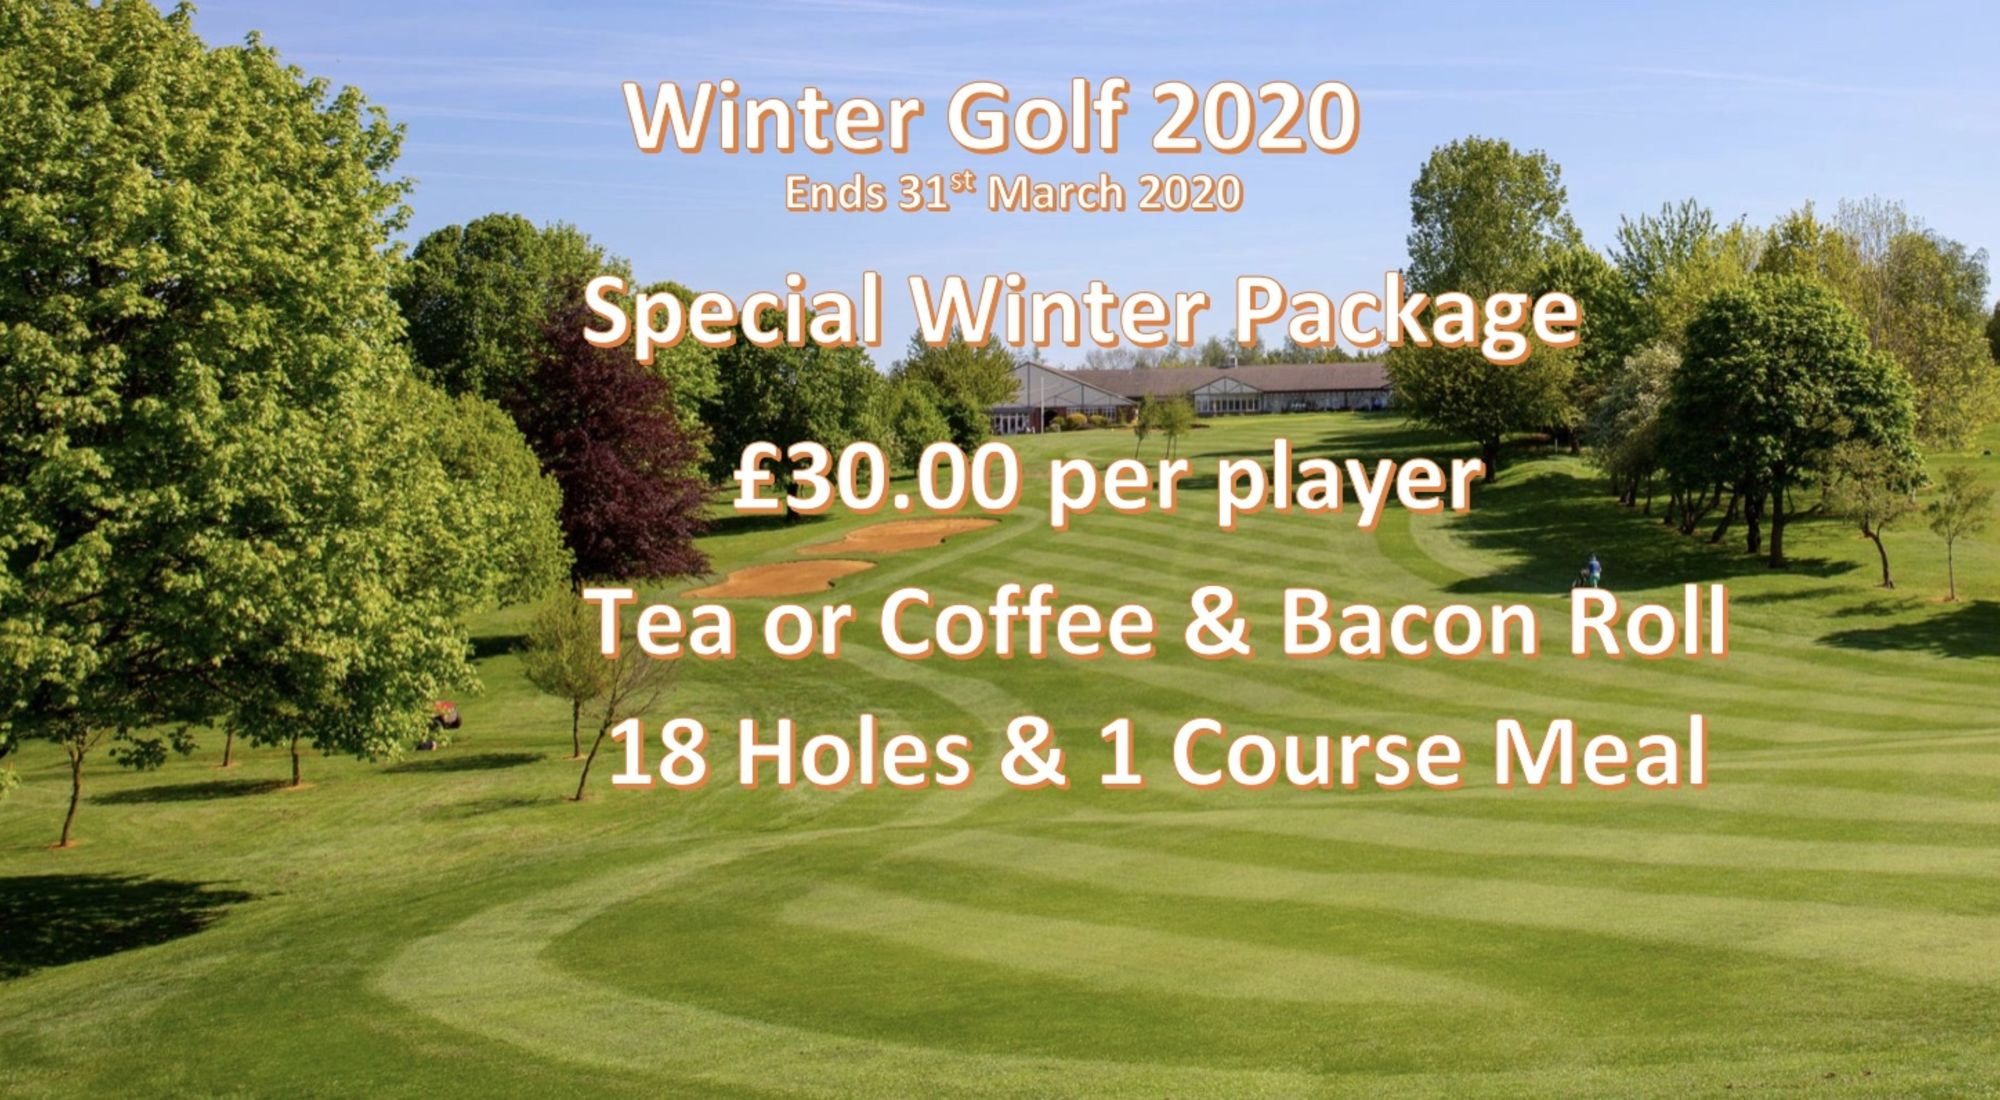 Winter Golf Offer 2020